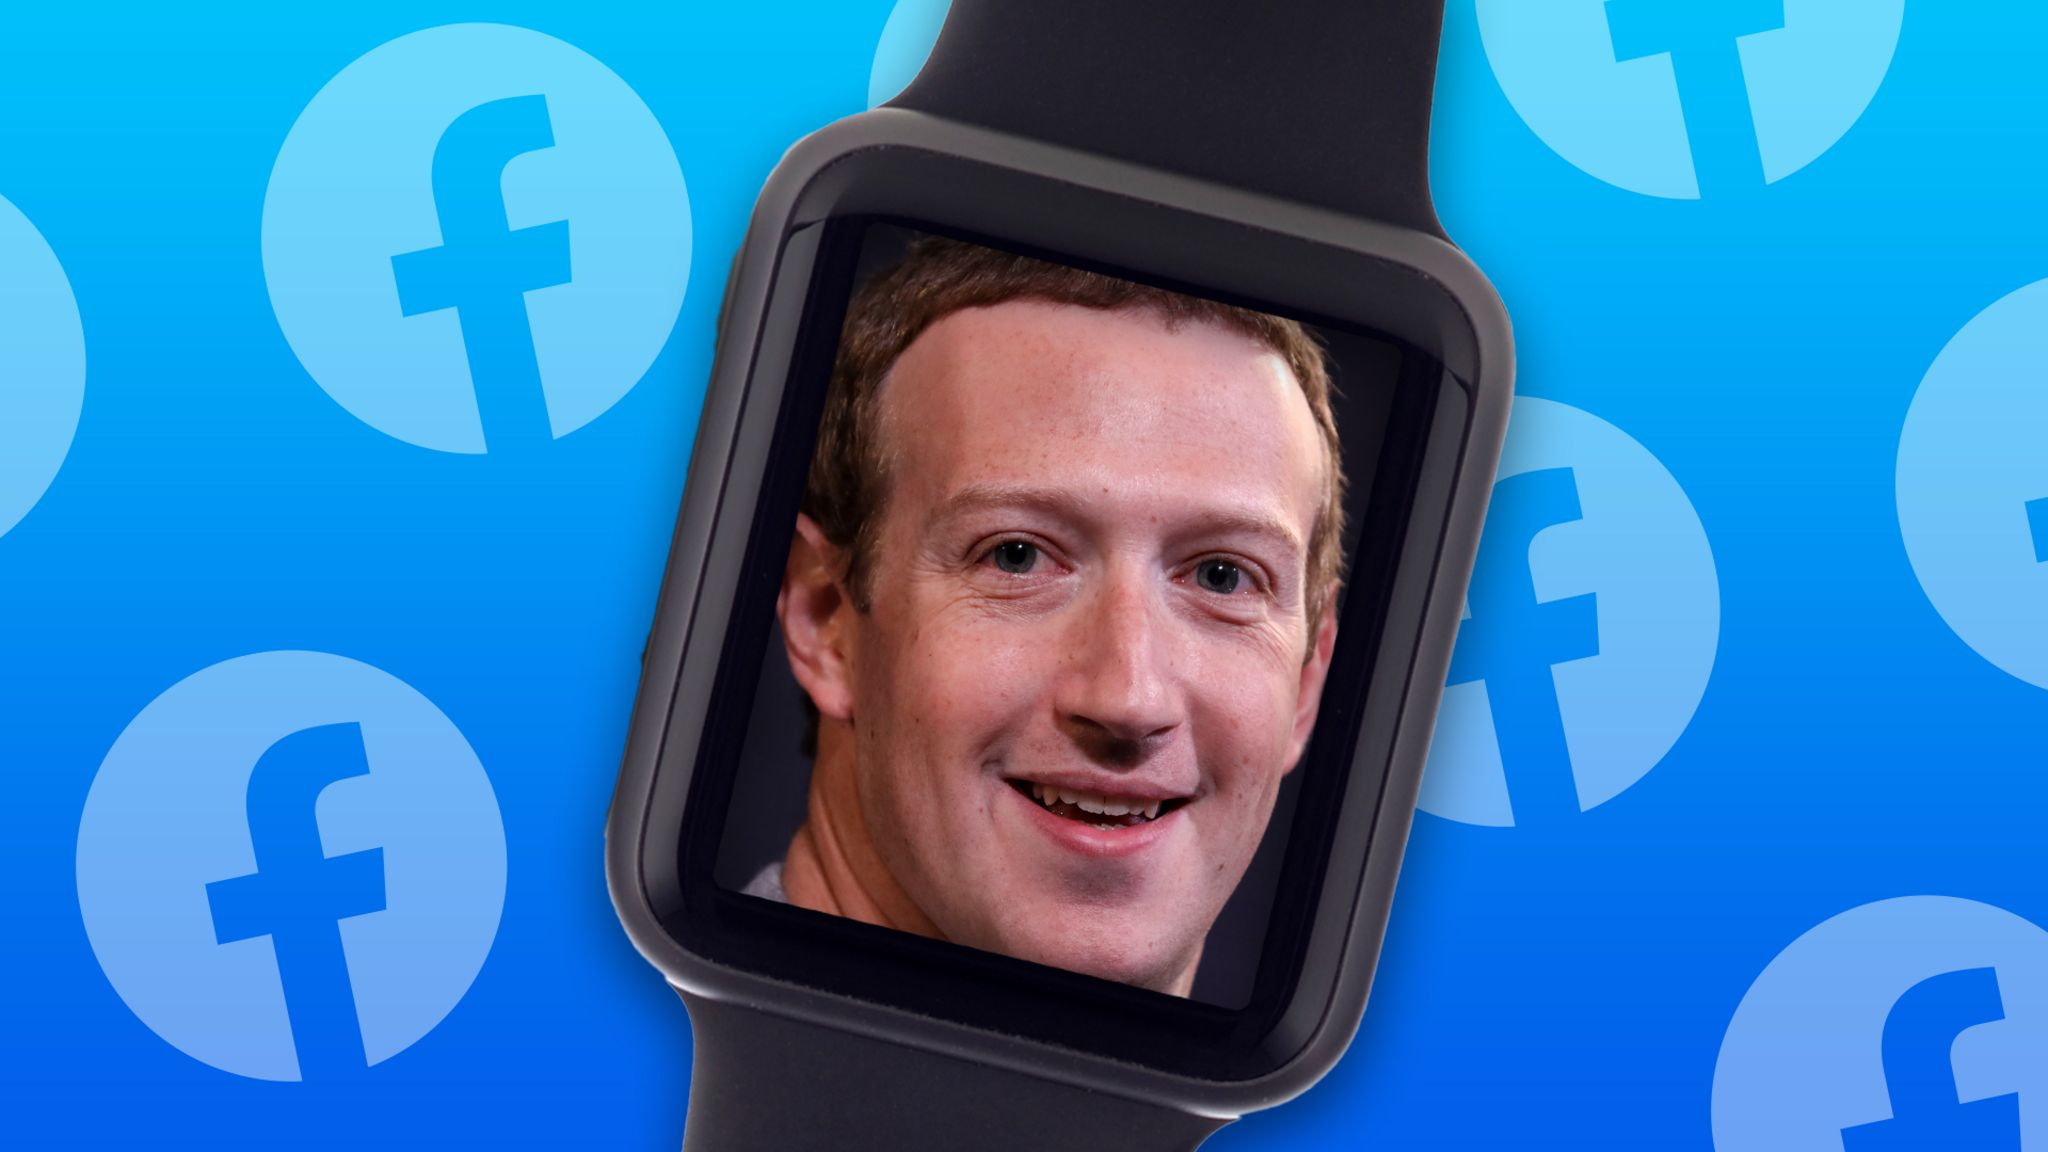 Mark Zuckerberg's photo is on the inside of a smartwatch against a blue background peppered with Facebook logos in this illustration